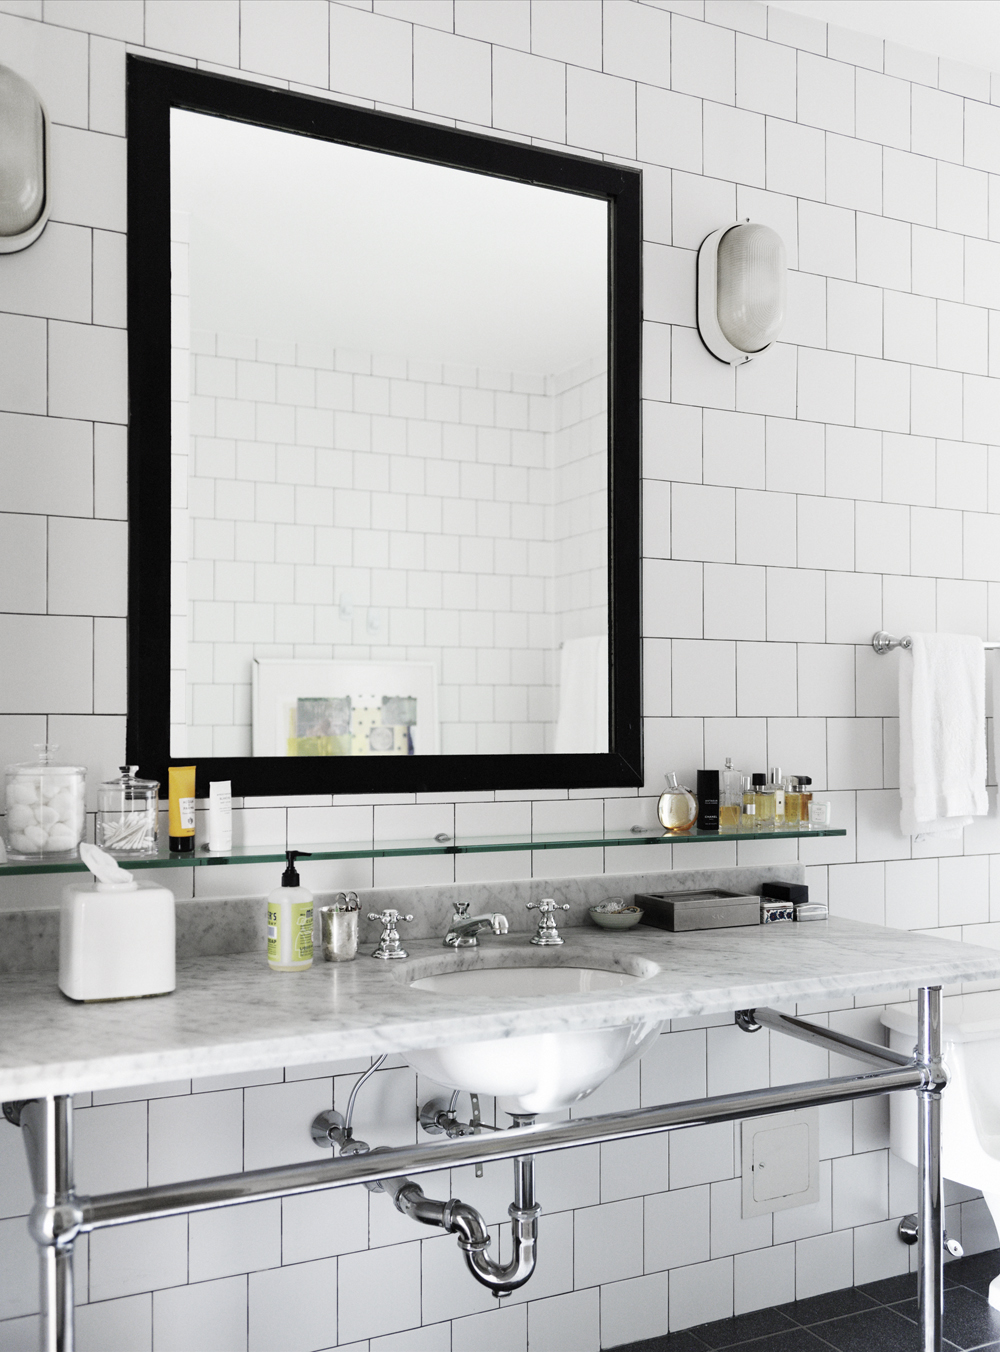 Bathroom sink and mirror - Bath Bathroom Sink Mirror Black Square Subway Tile Marble Counter